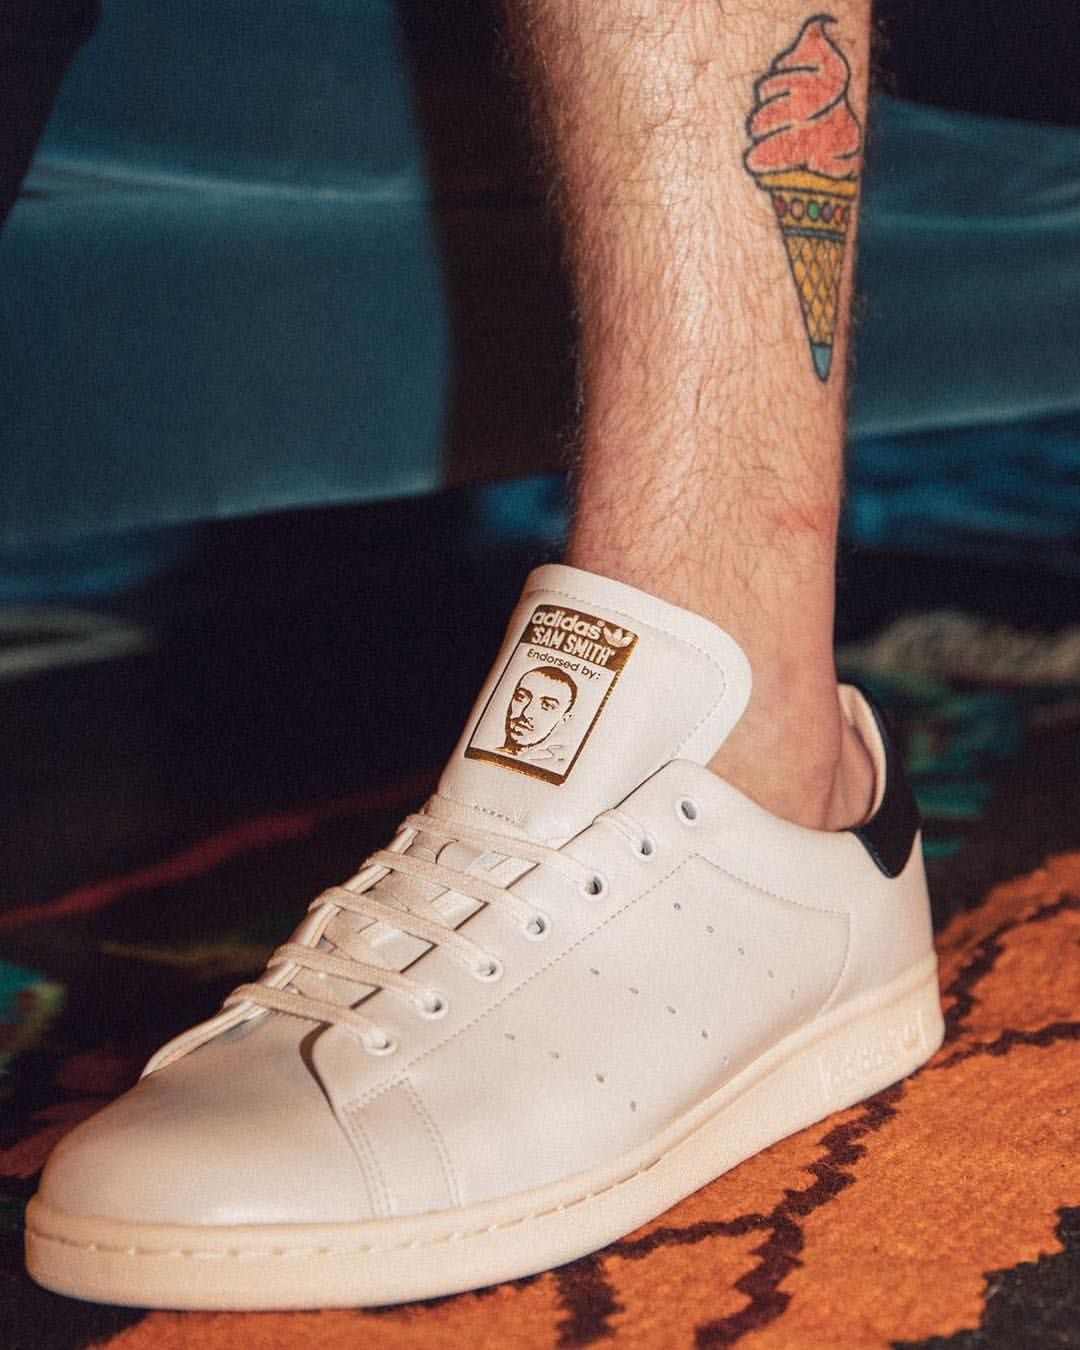 STAN SMITH / SAM SMITH @adidas Thank you so much for this ...